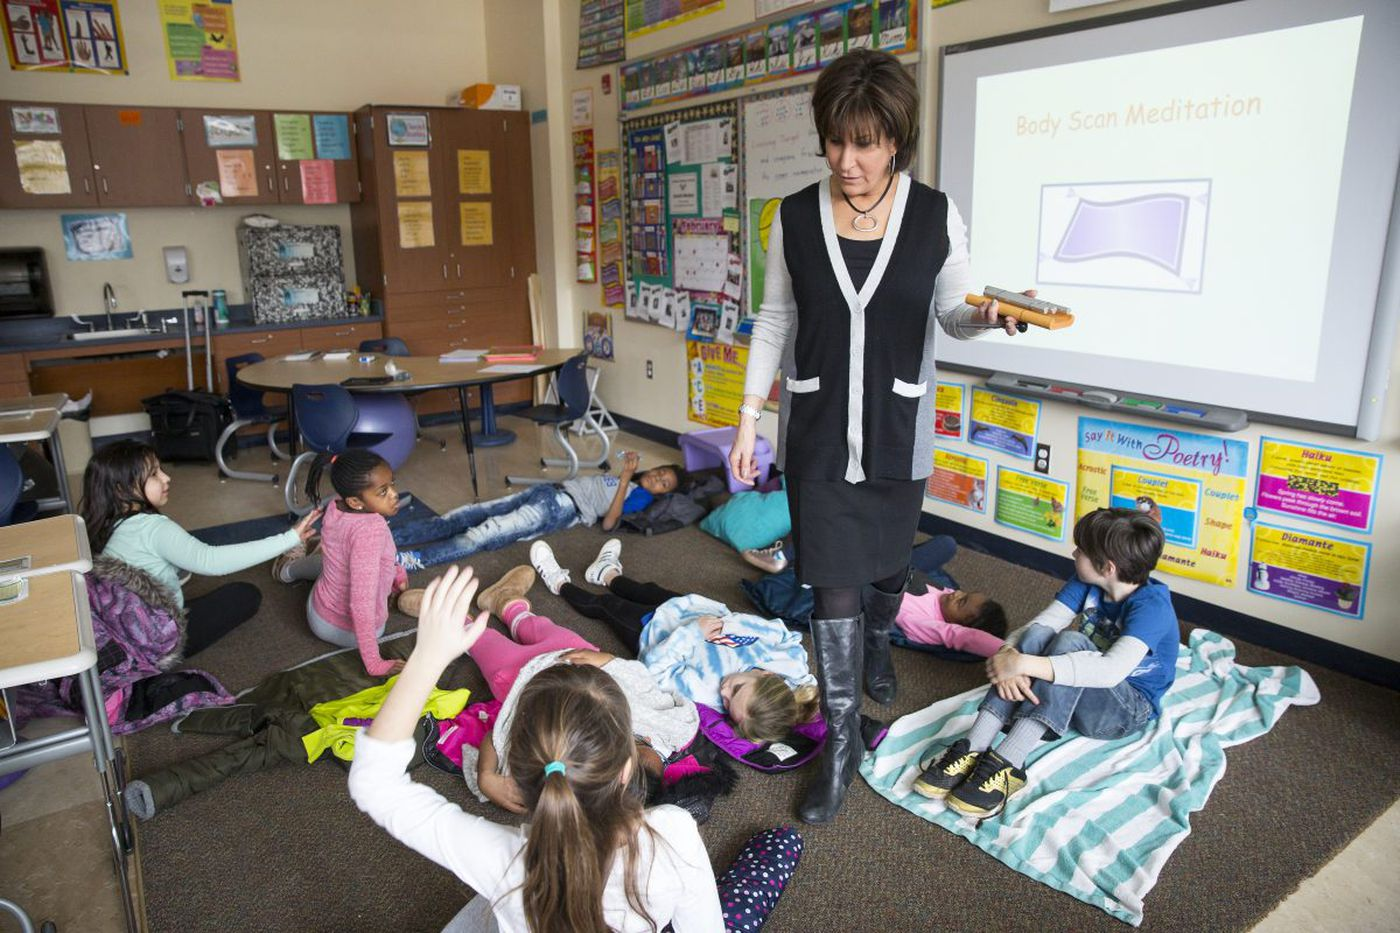 After last year's brawl, Cheltenham schools try mindfulness to keep the peace